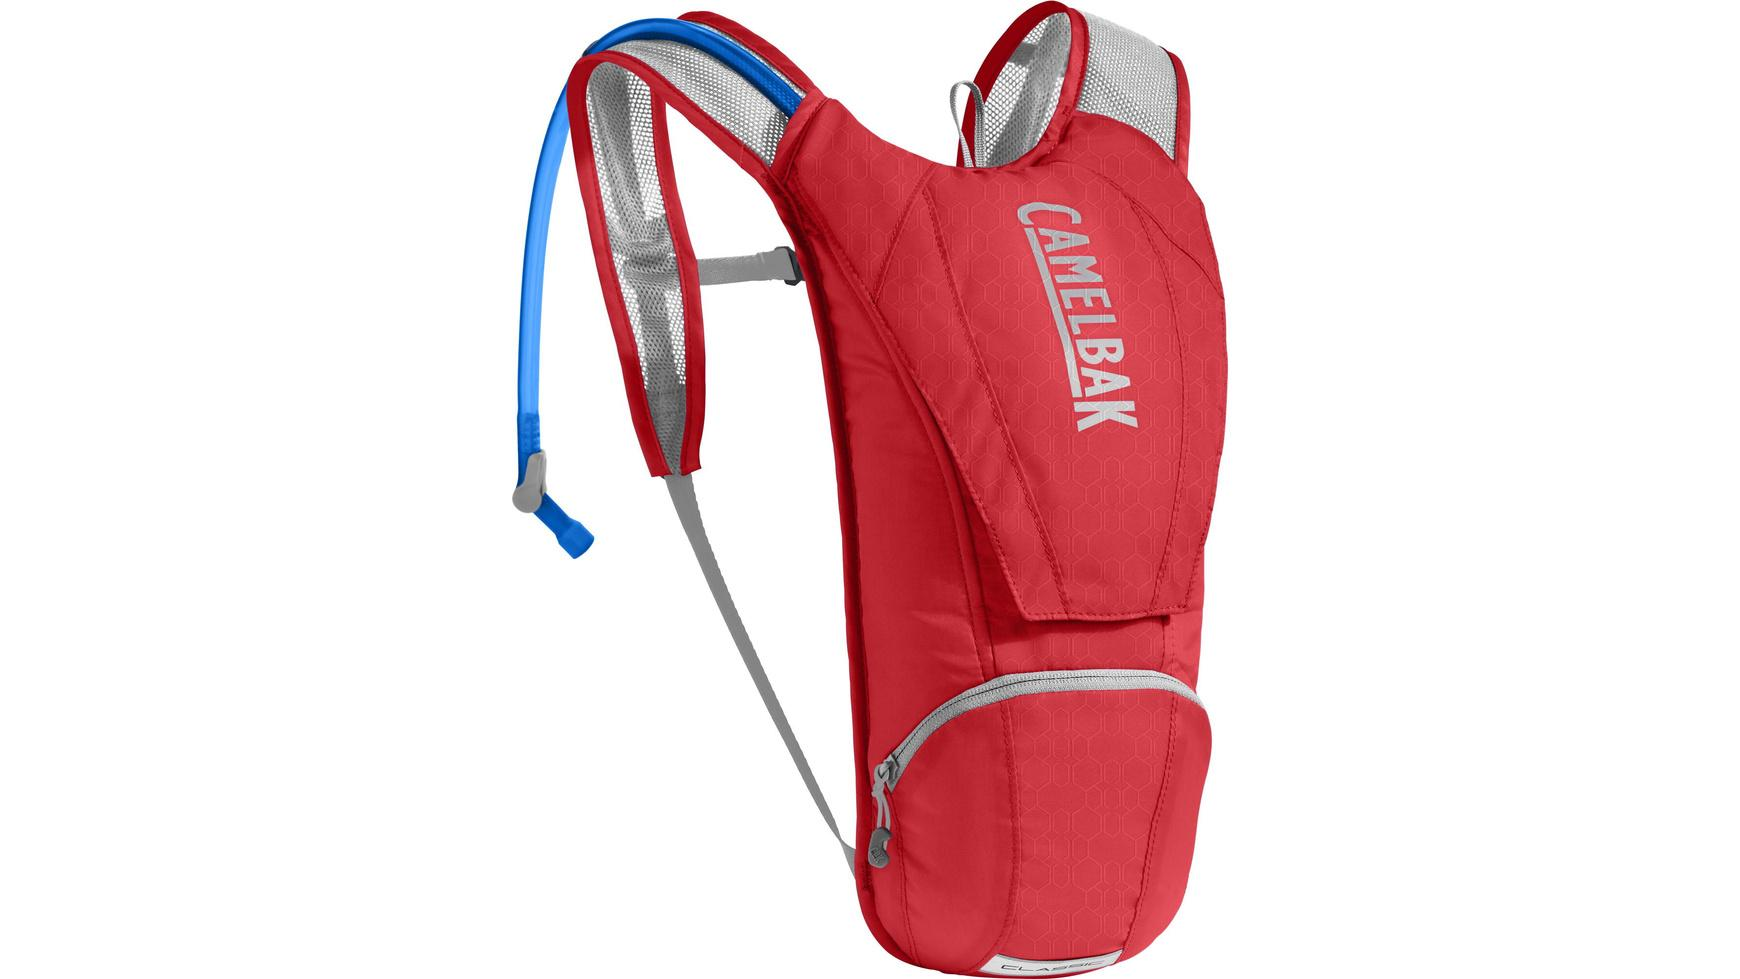 Afbeelding Camelbak Rugzak Rood  / Classic 85 oz Racing Red/Silver - 2.5LTR